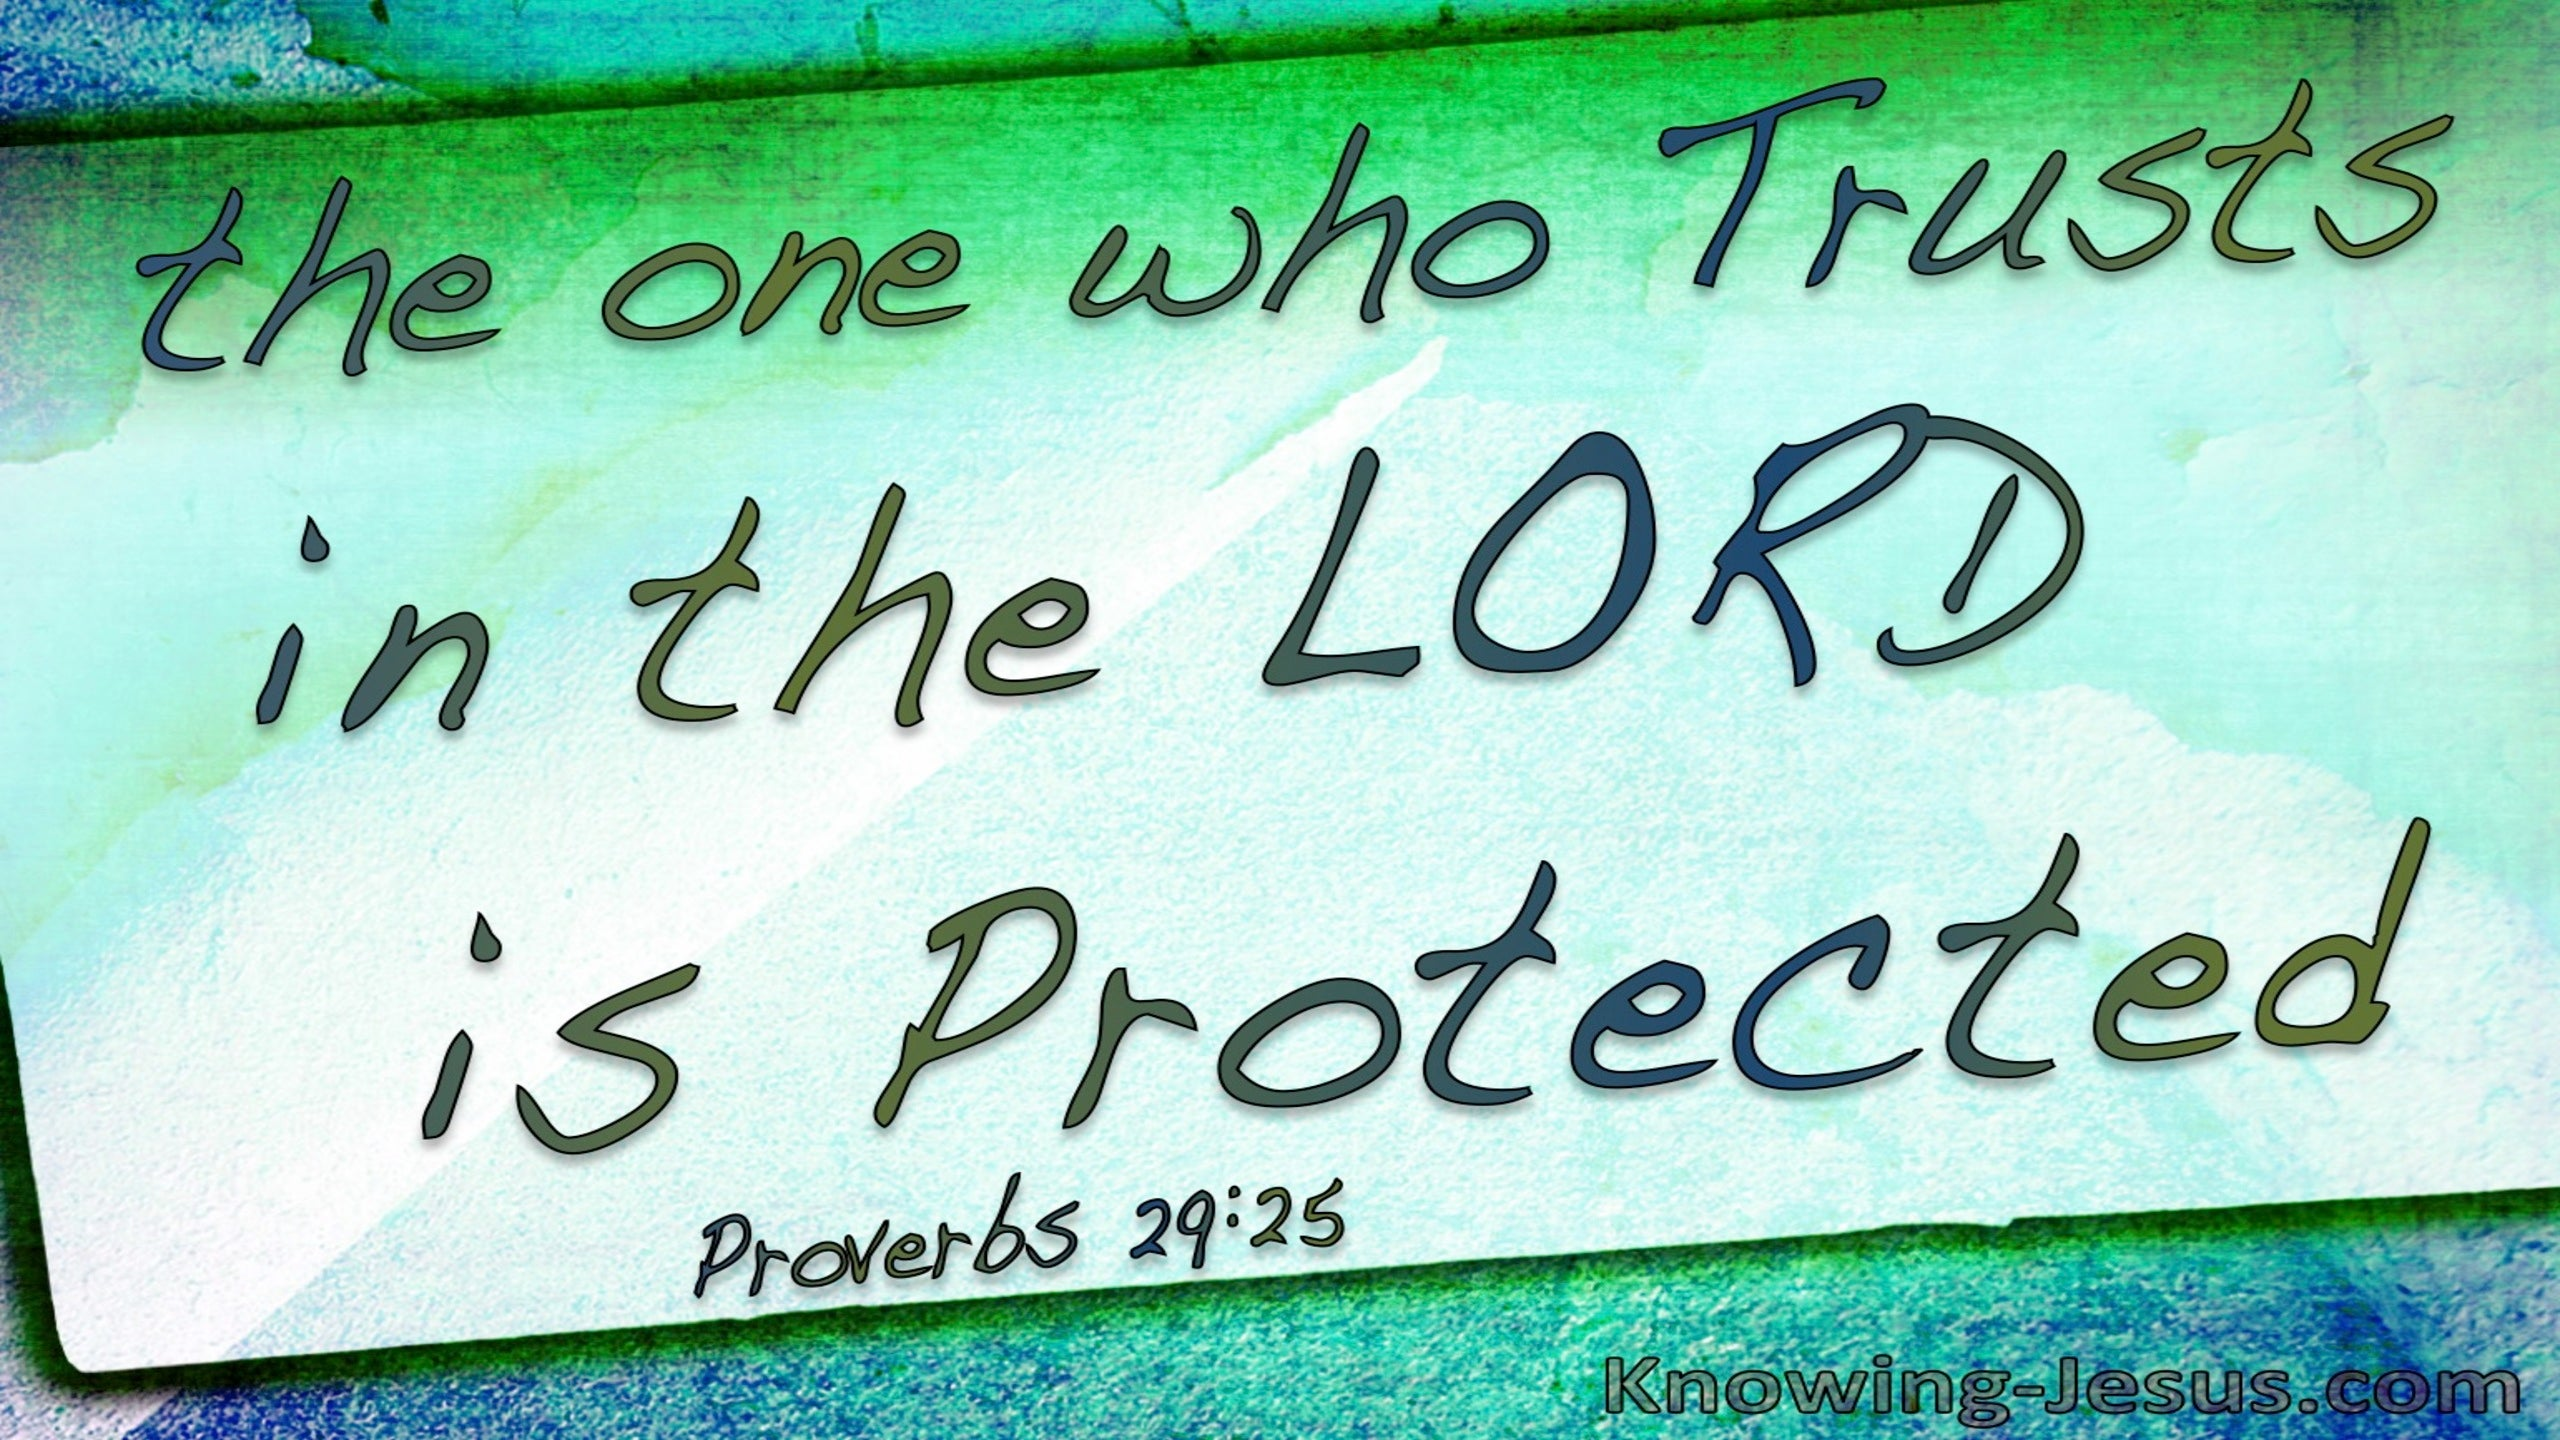 Proverbs 29:25 Fear Of Man Is A Snare (green)